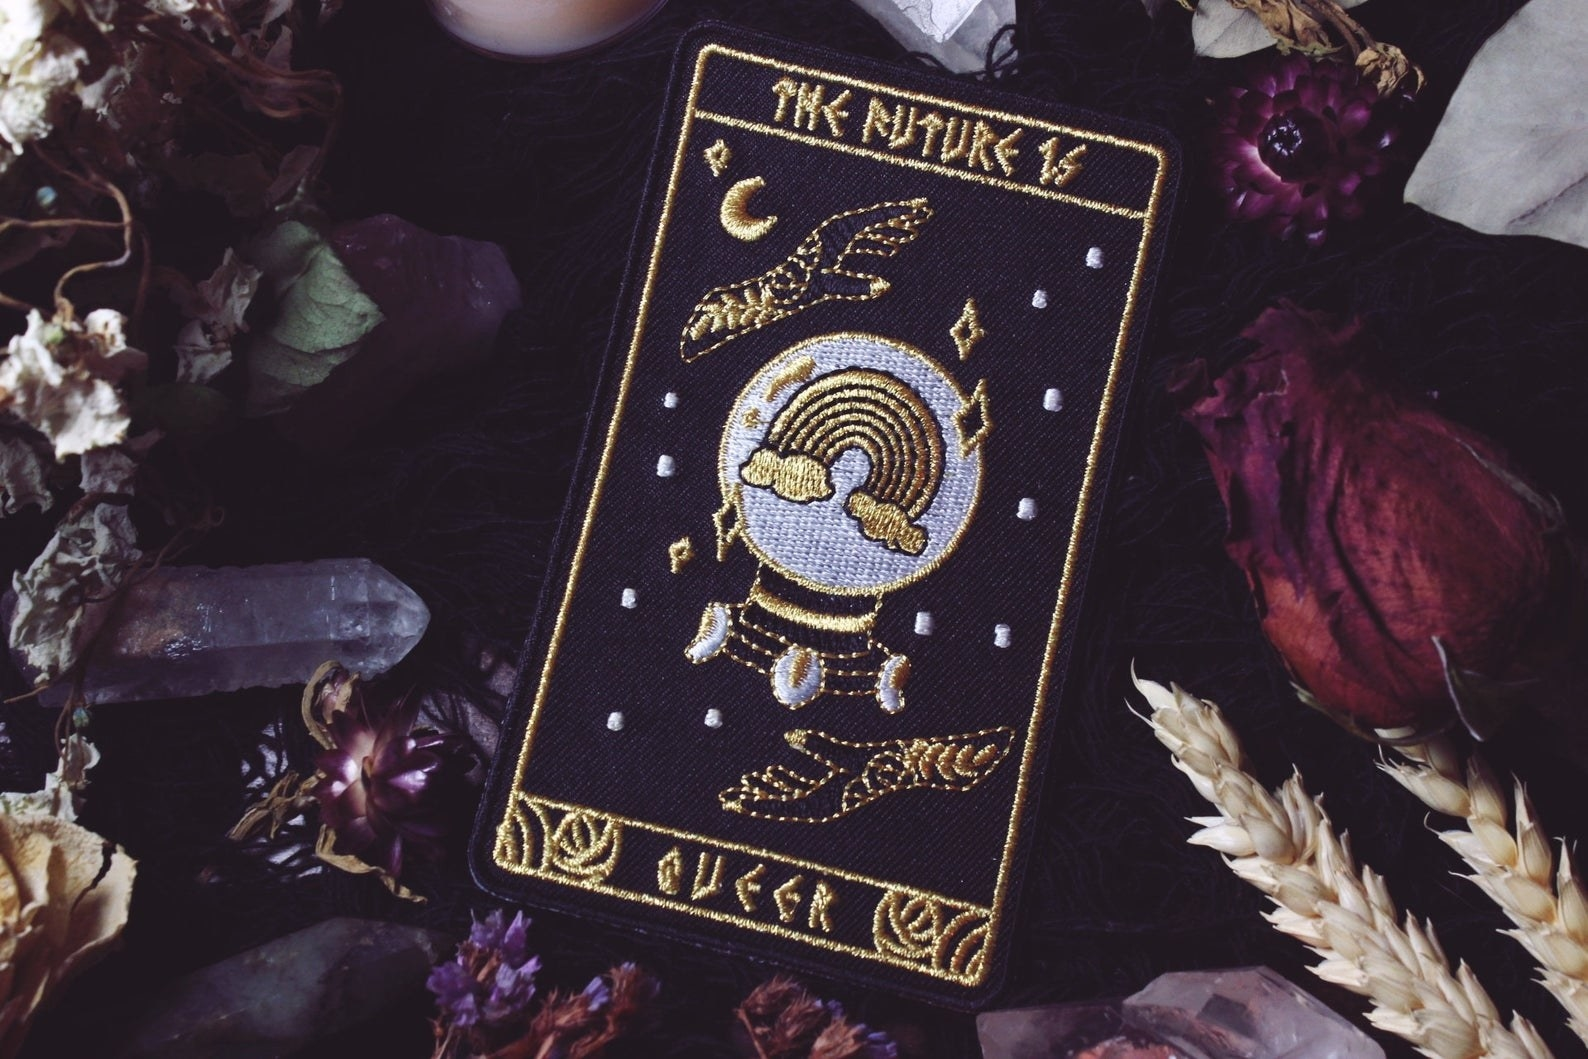 the future is queer tarot patch